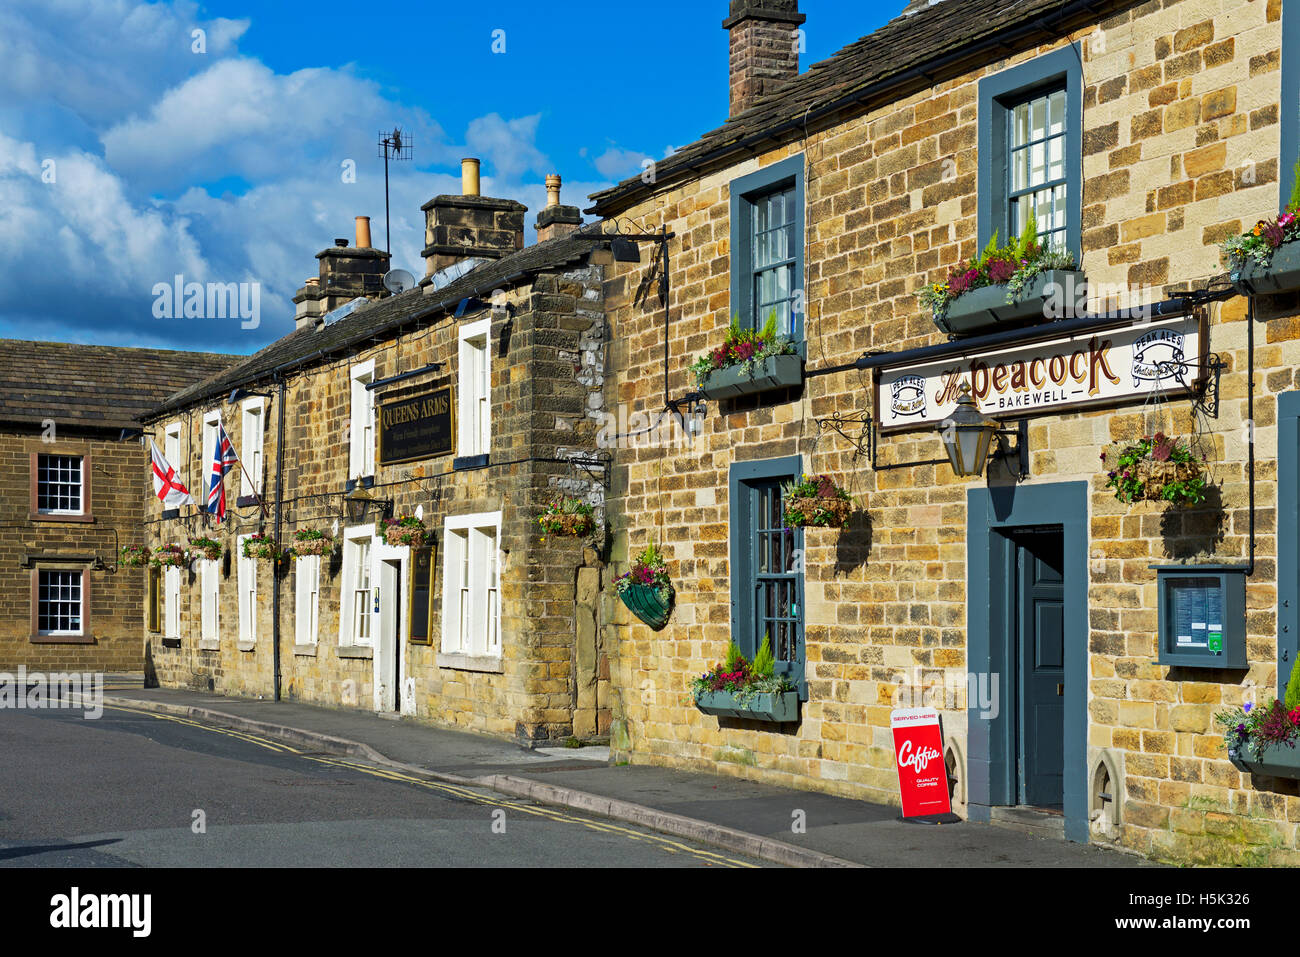 Pubs in Bakewell, Derbyshire, England UK - Stock Image